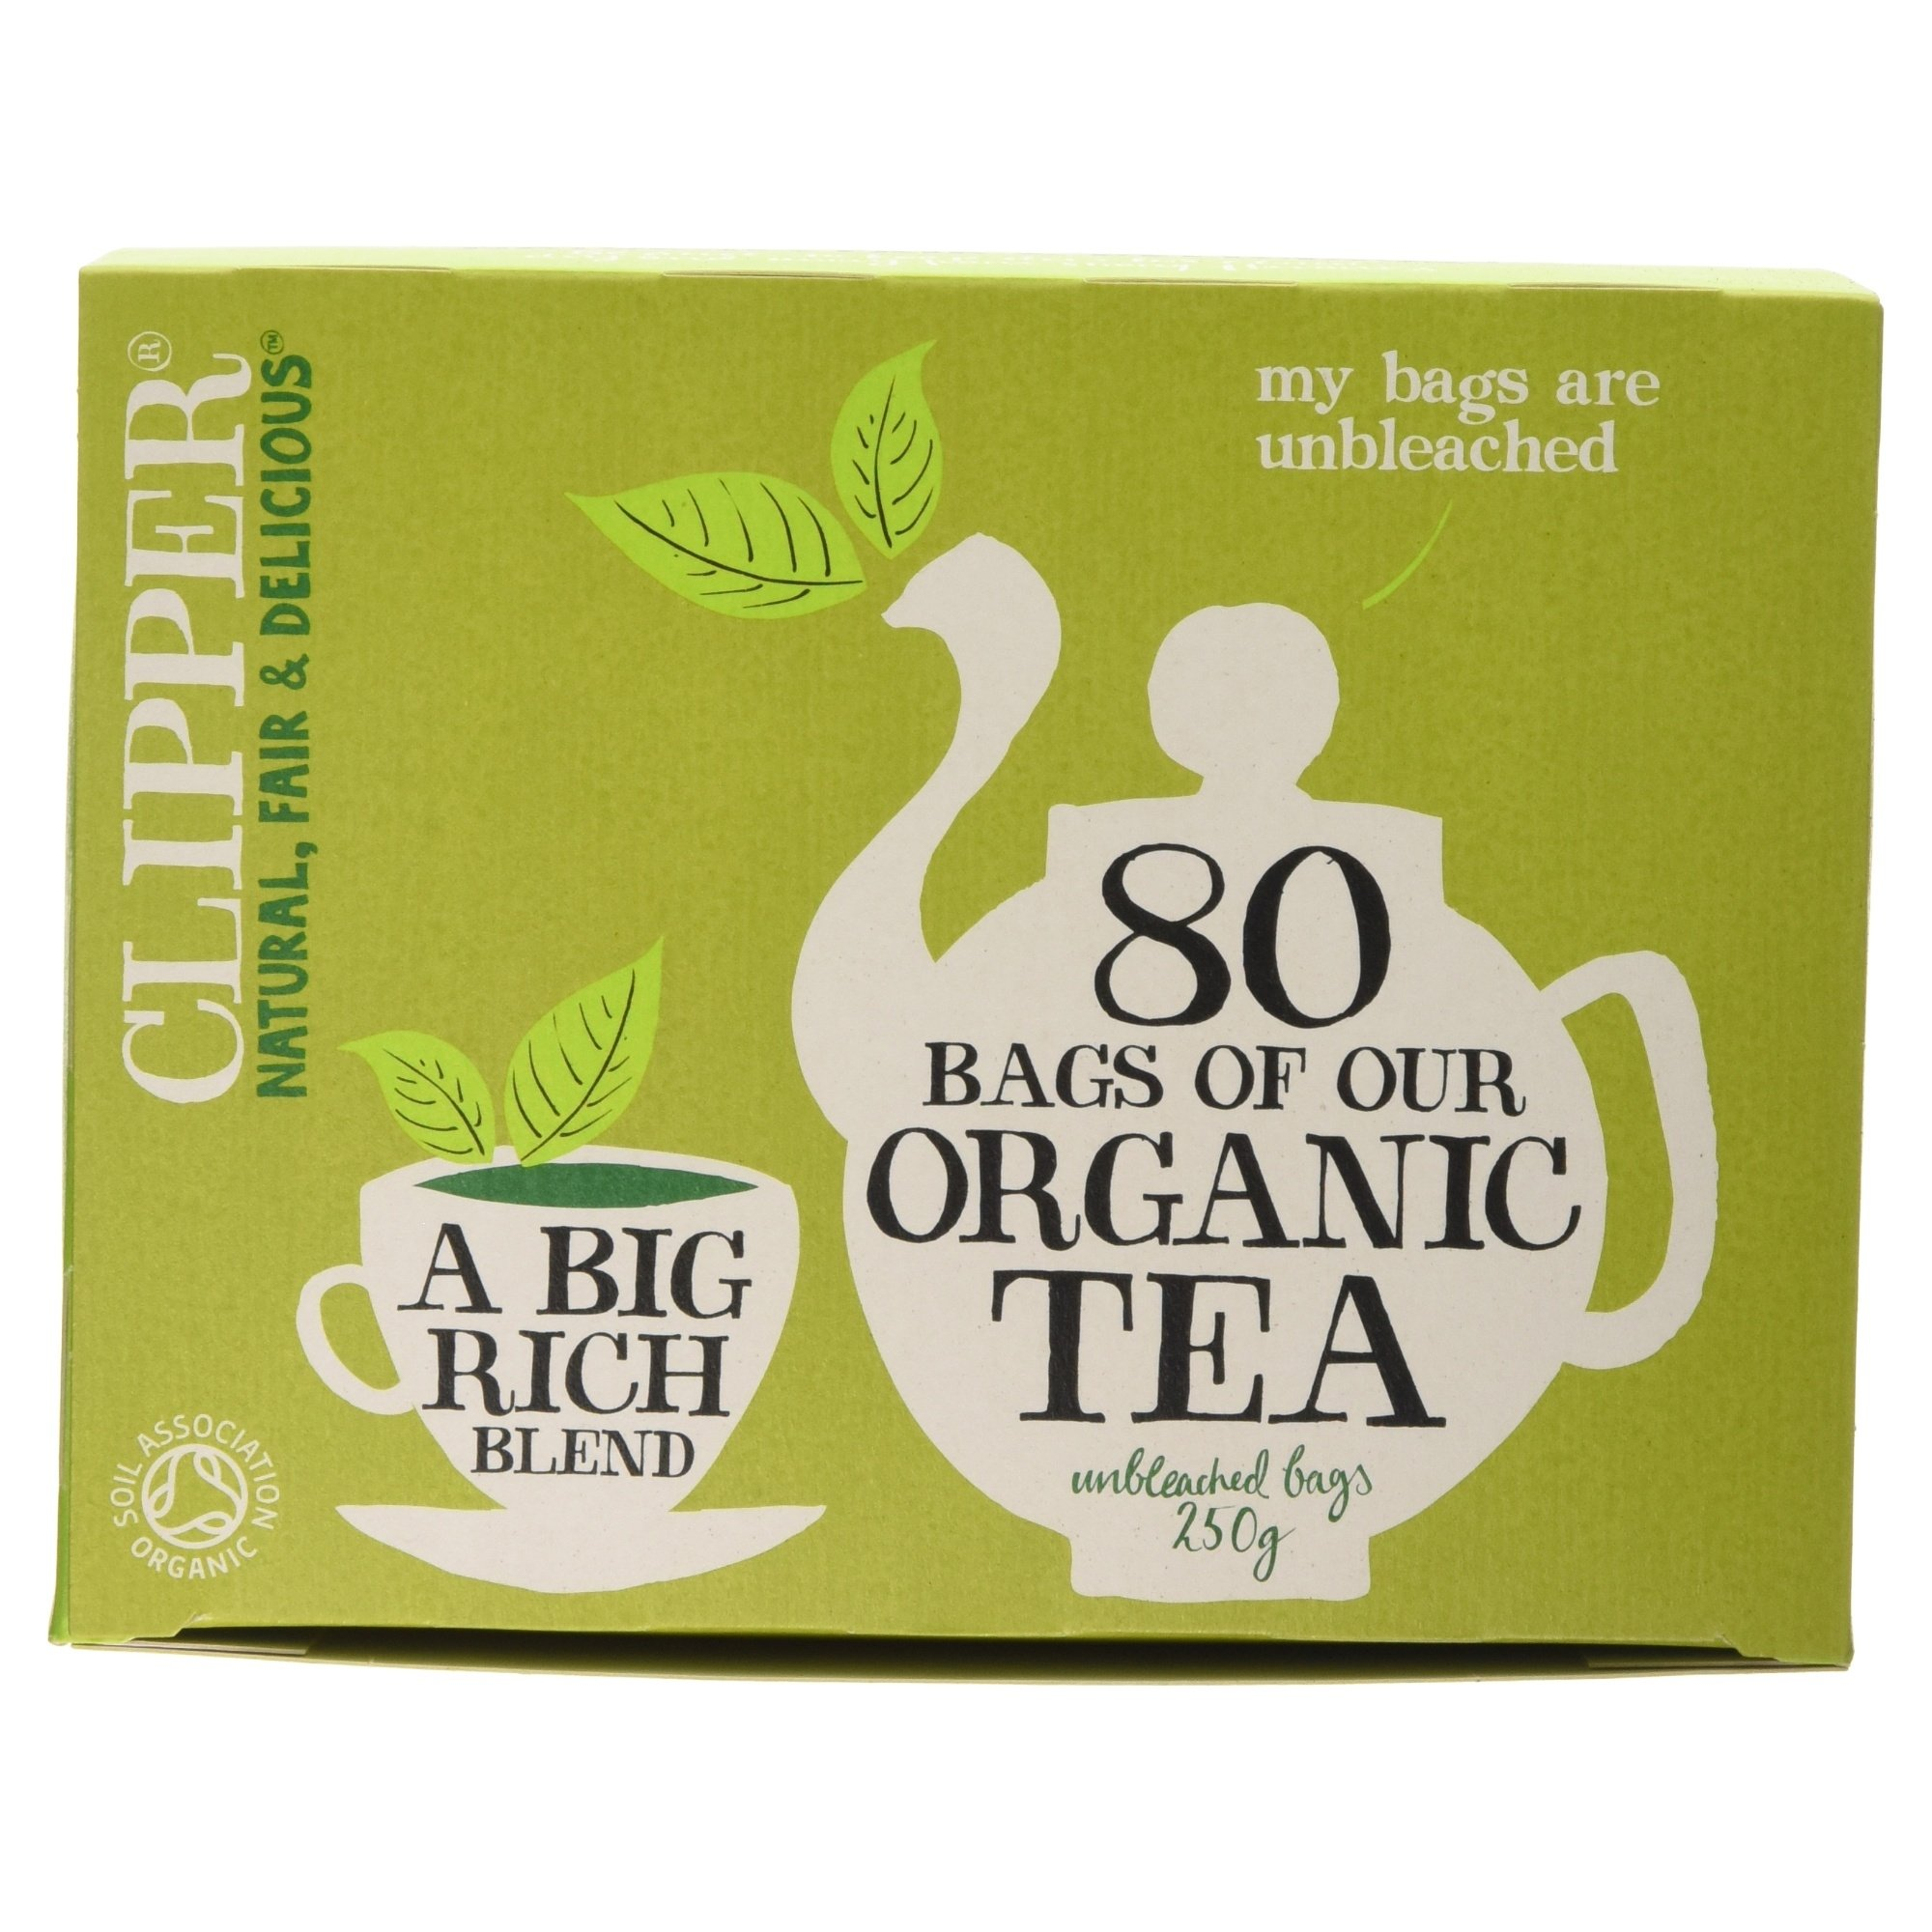 clipper teas 20 unbleached bags of organic. Black Bedroom Furniture Sets. Home Design Ideas